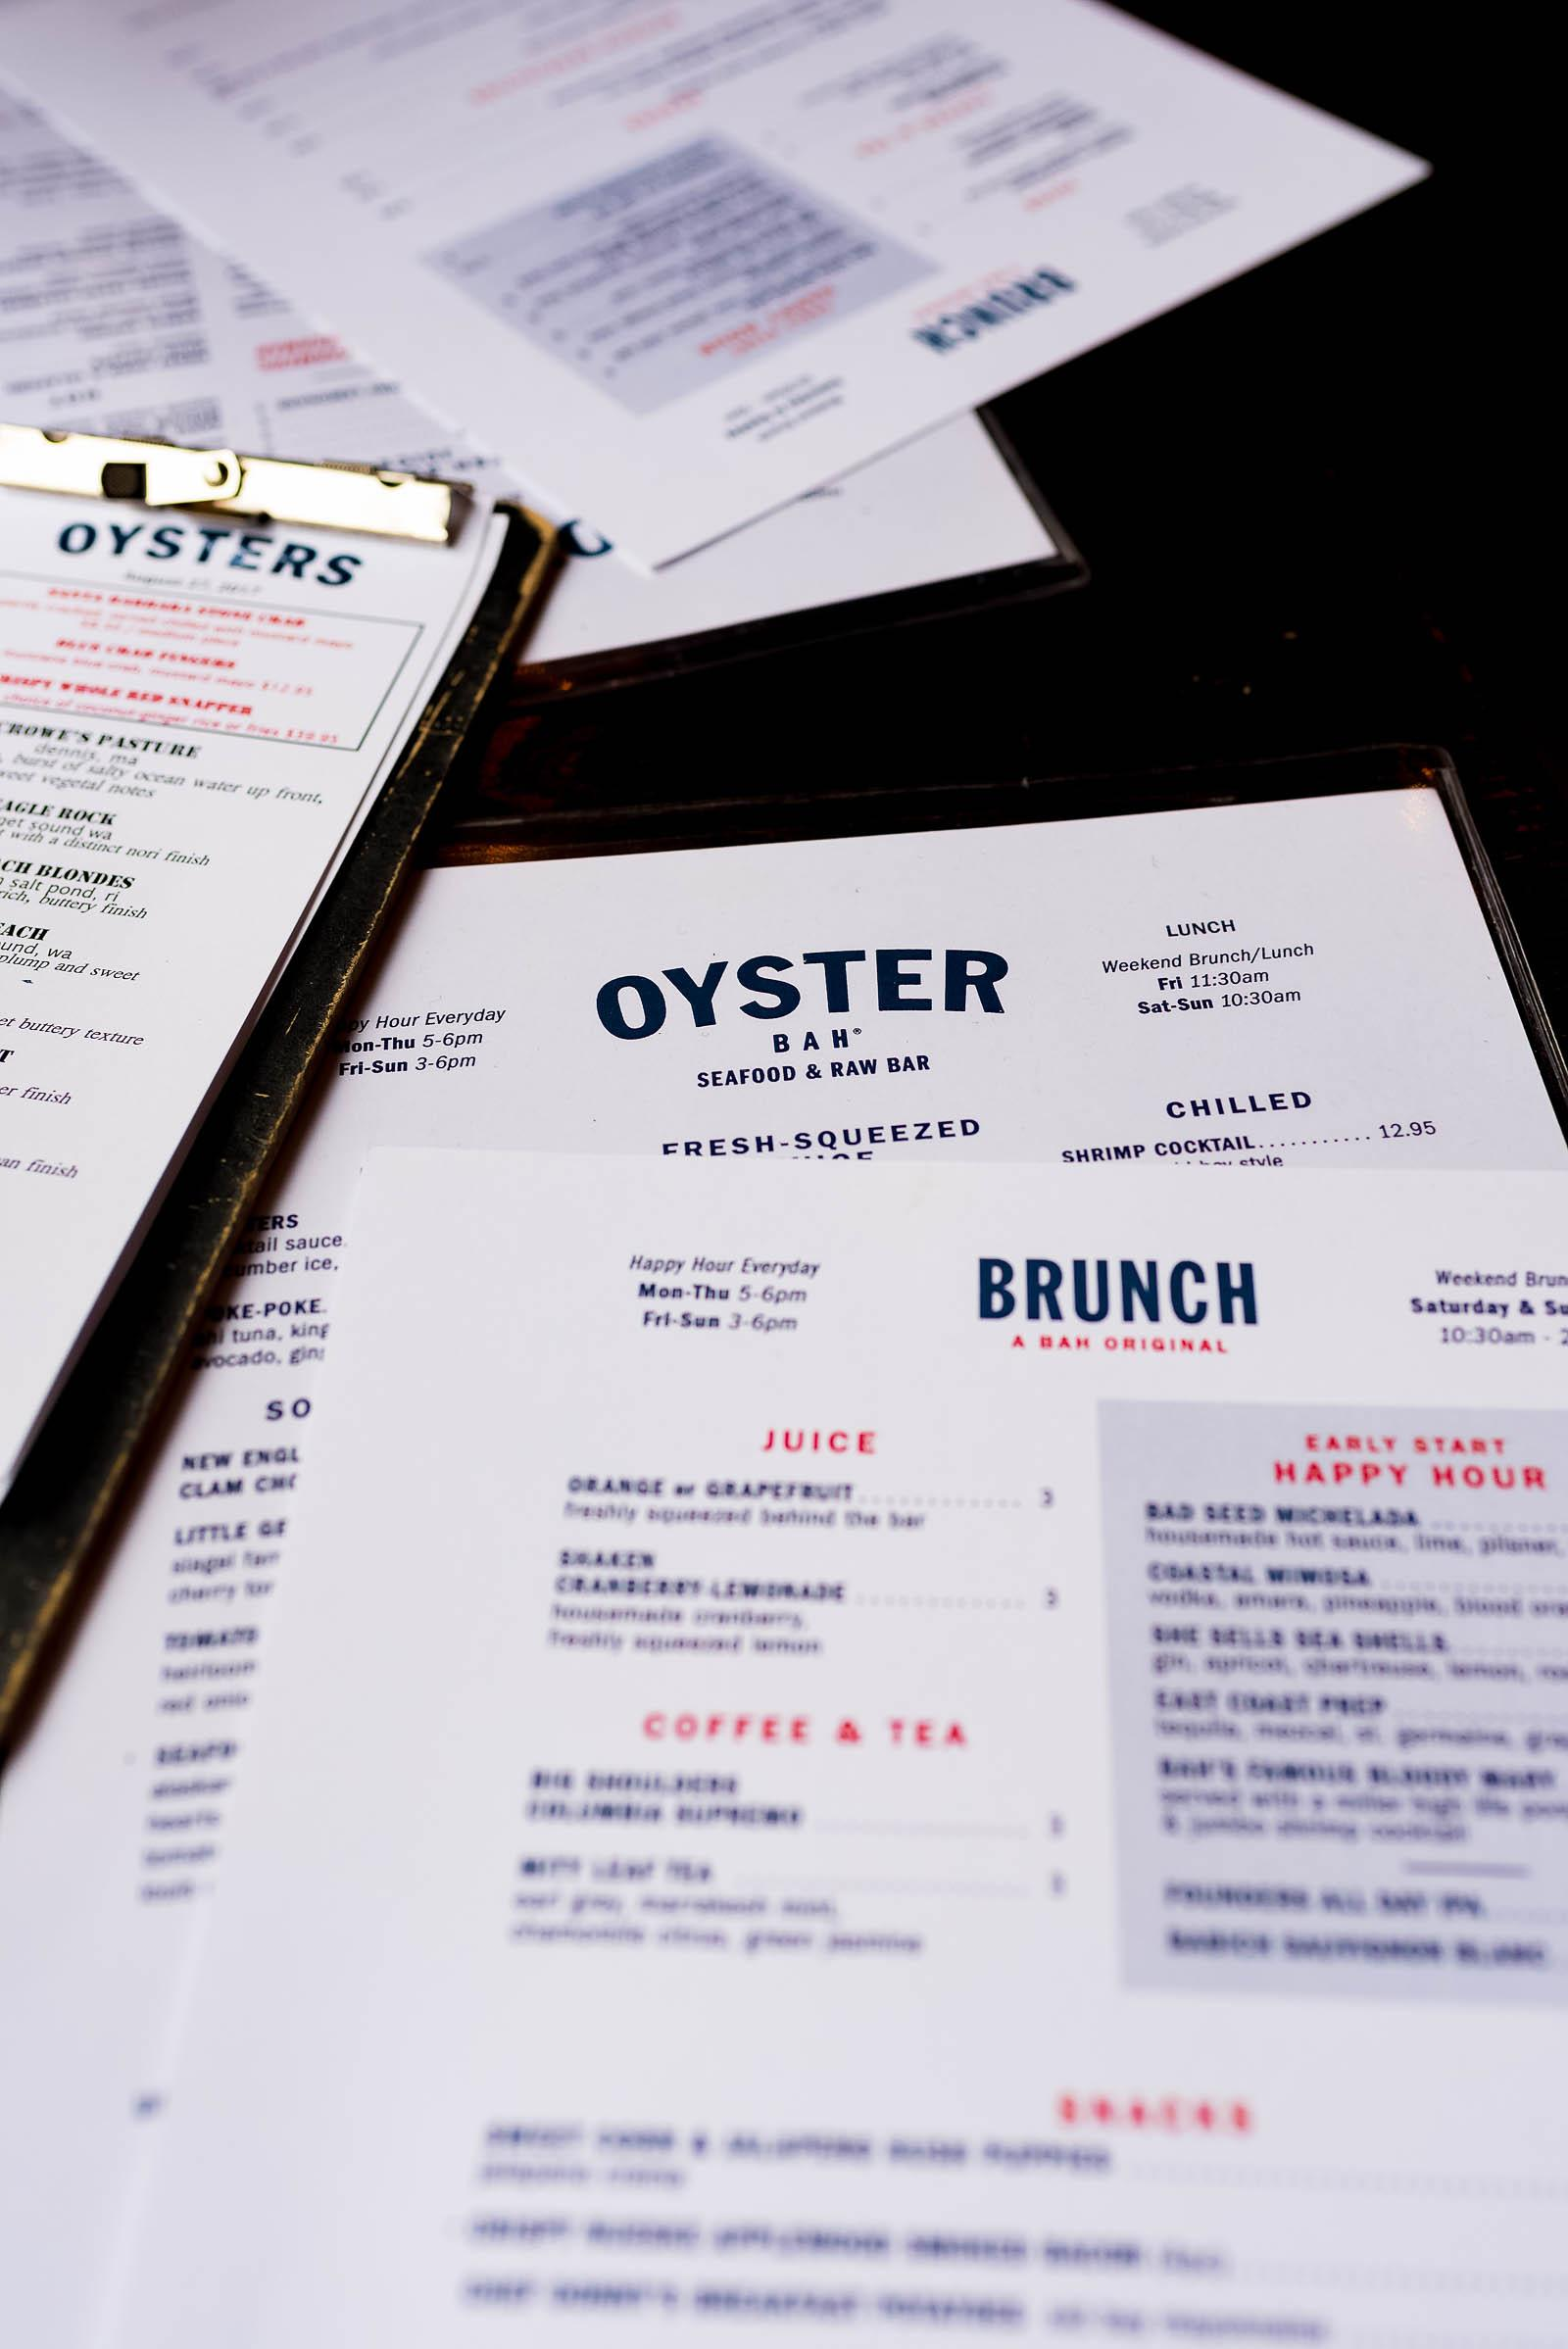 Oyster Bah Chicago Brunch